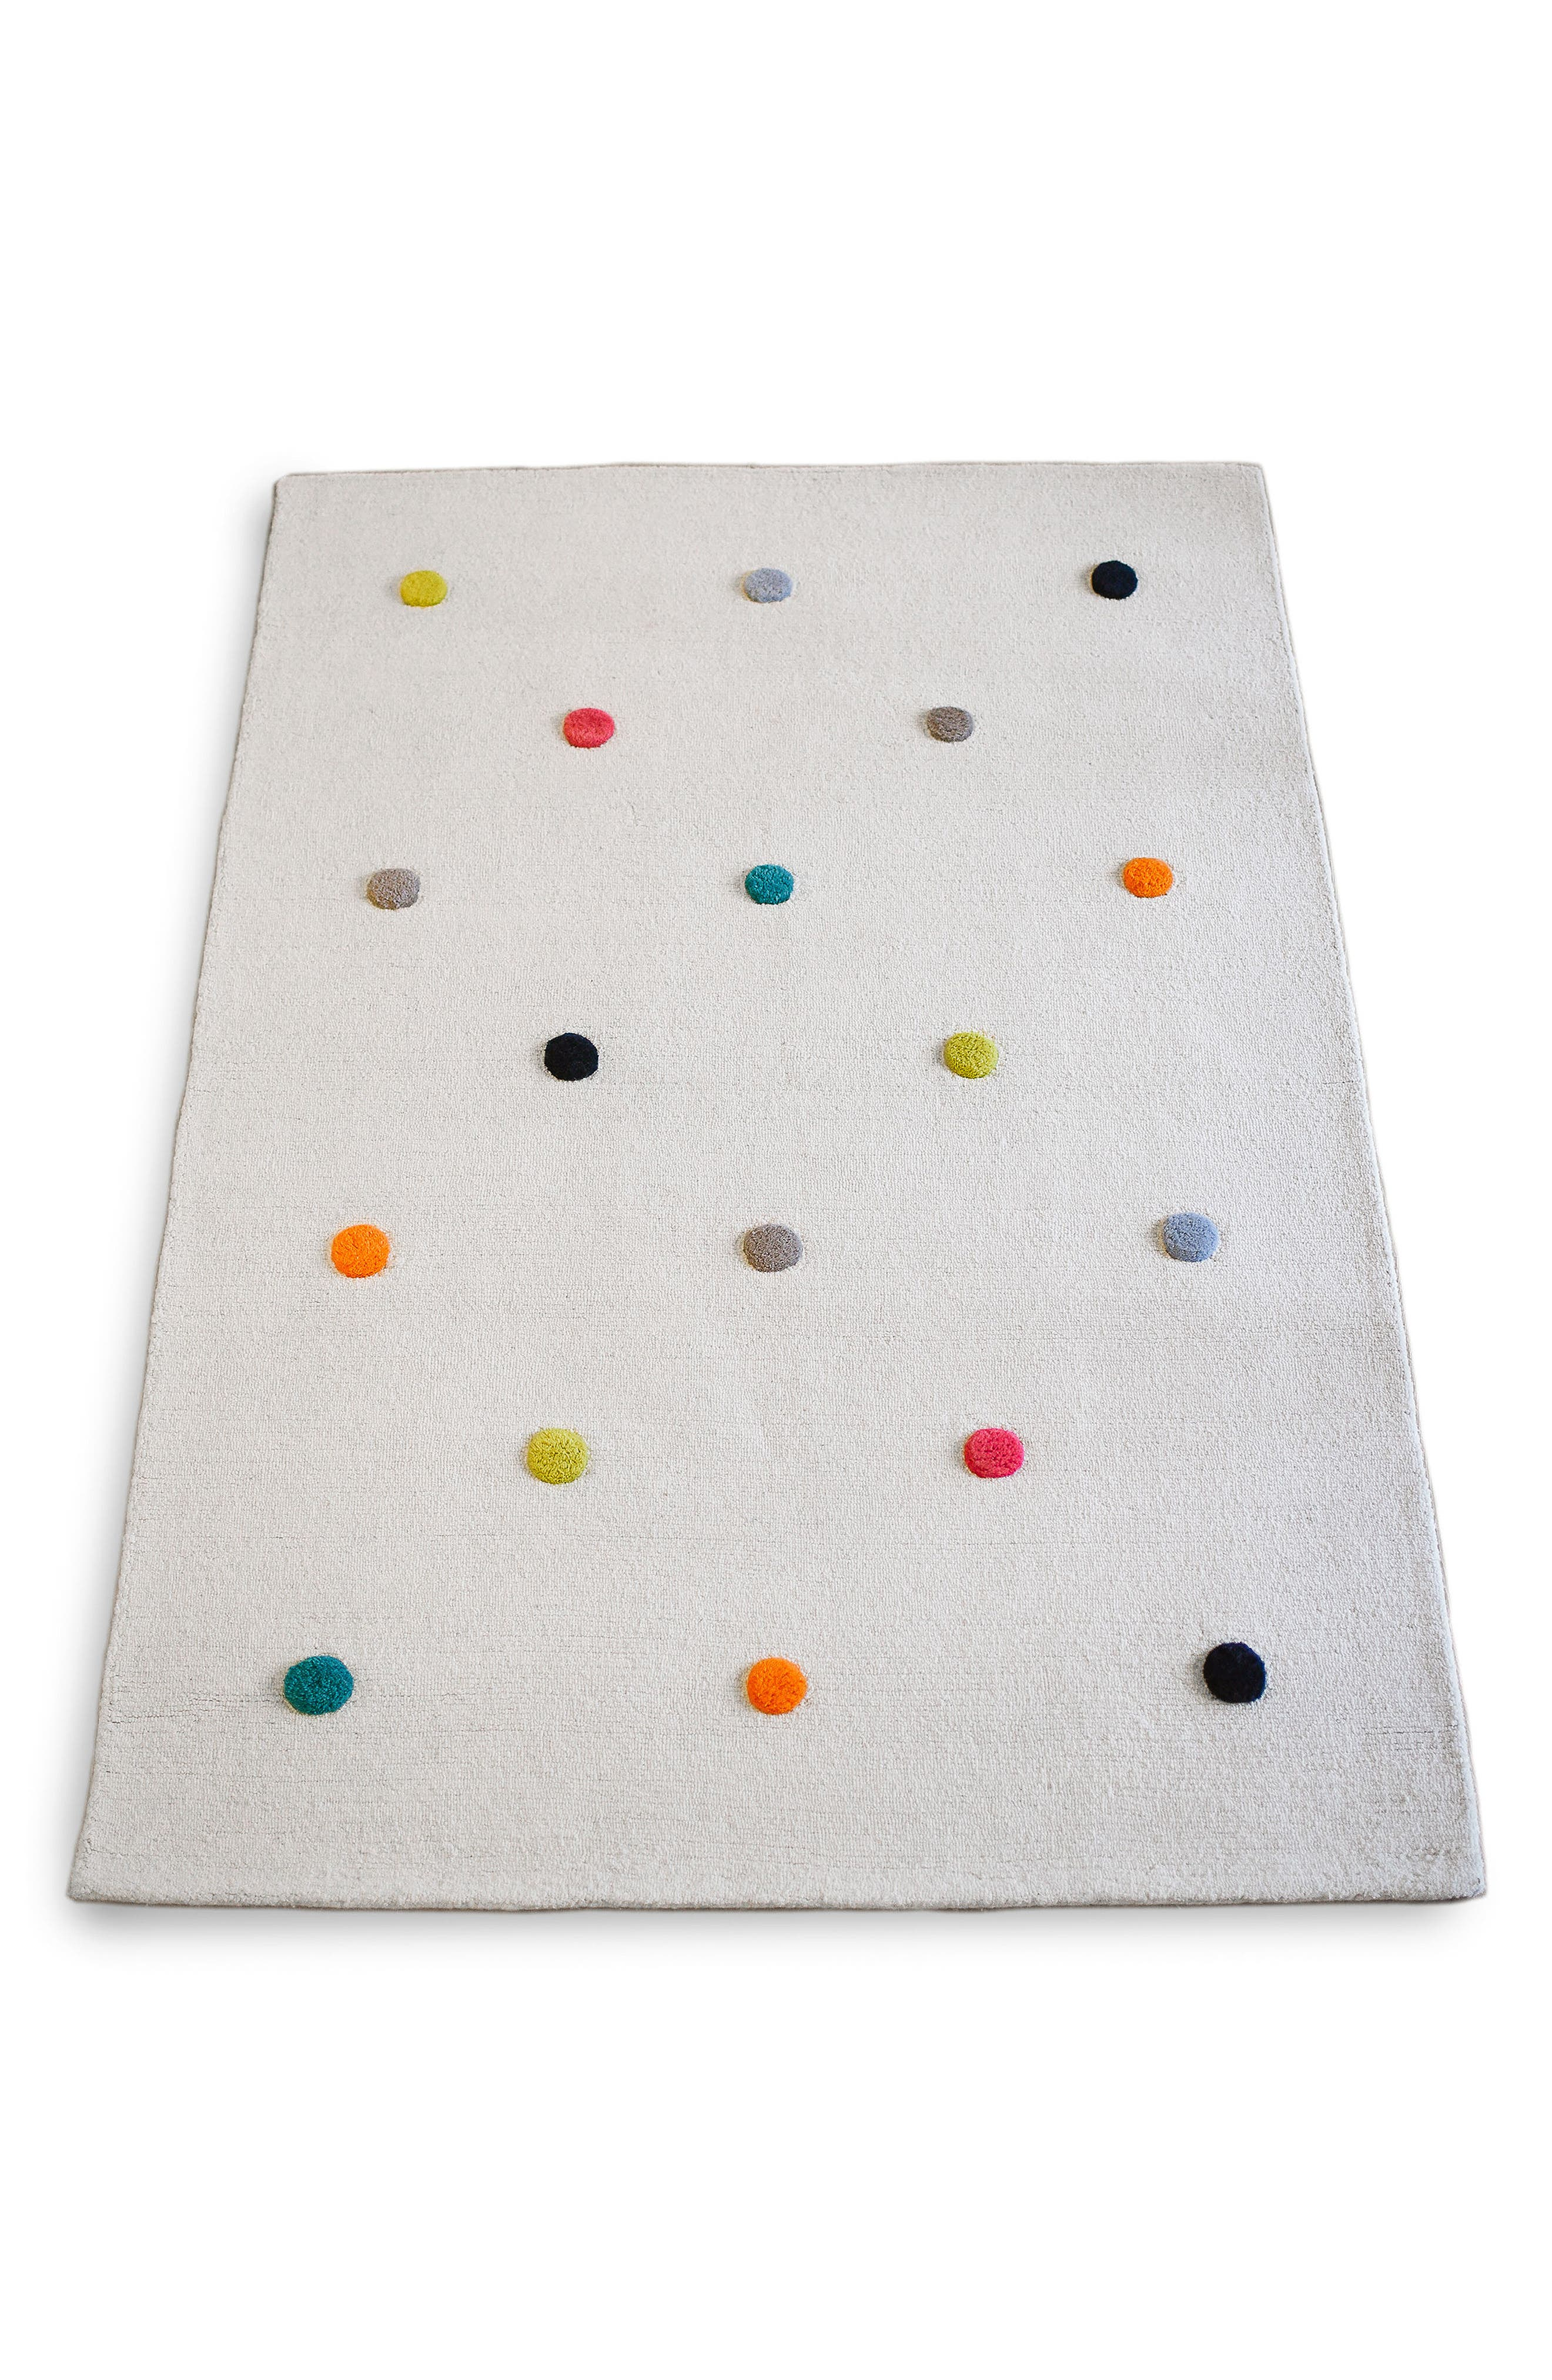 Multicolor Pompom Wool Rug,                             Main thumbnail 1, color,                             100